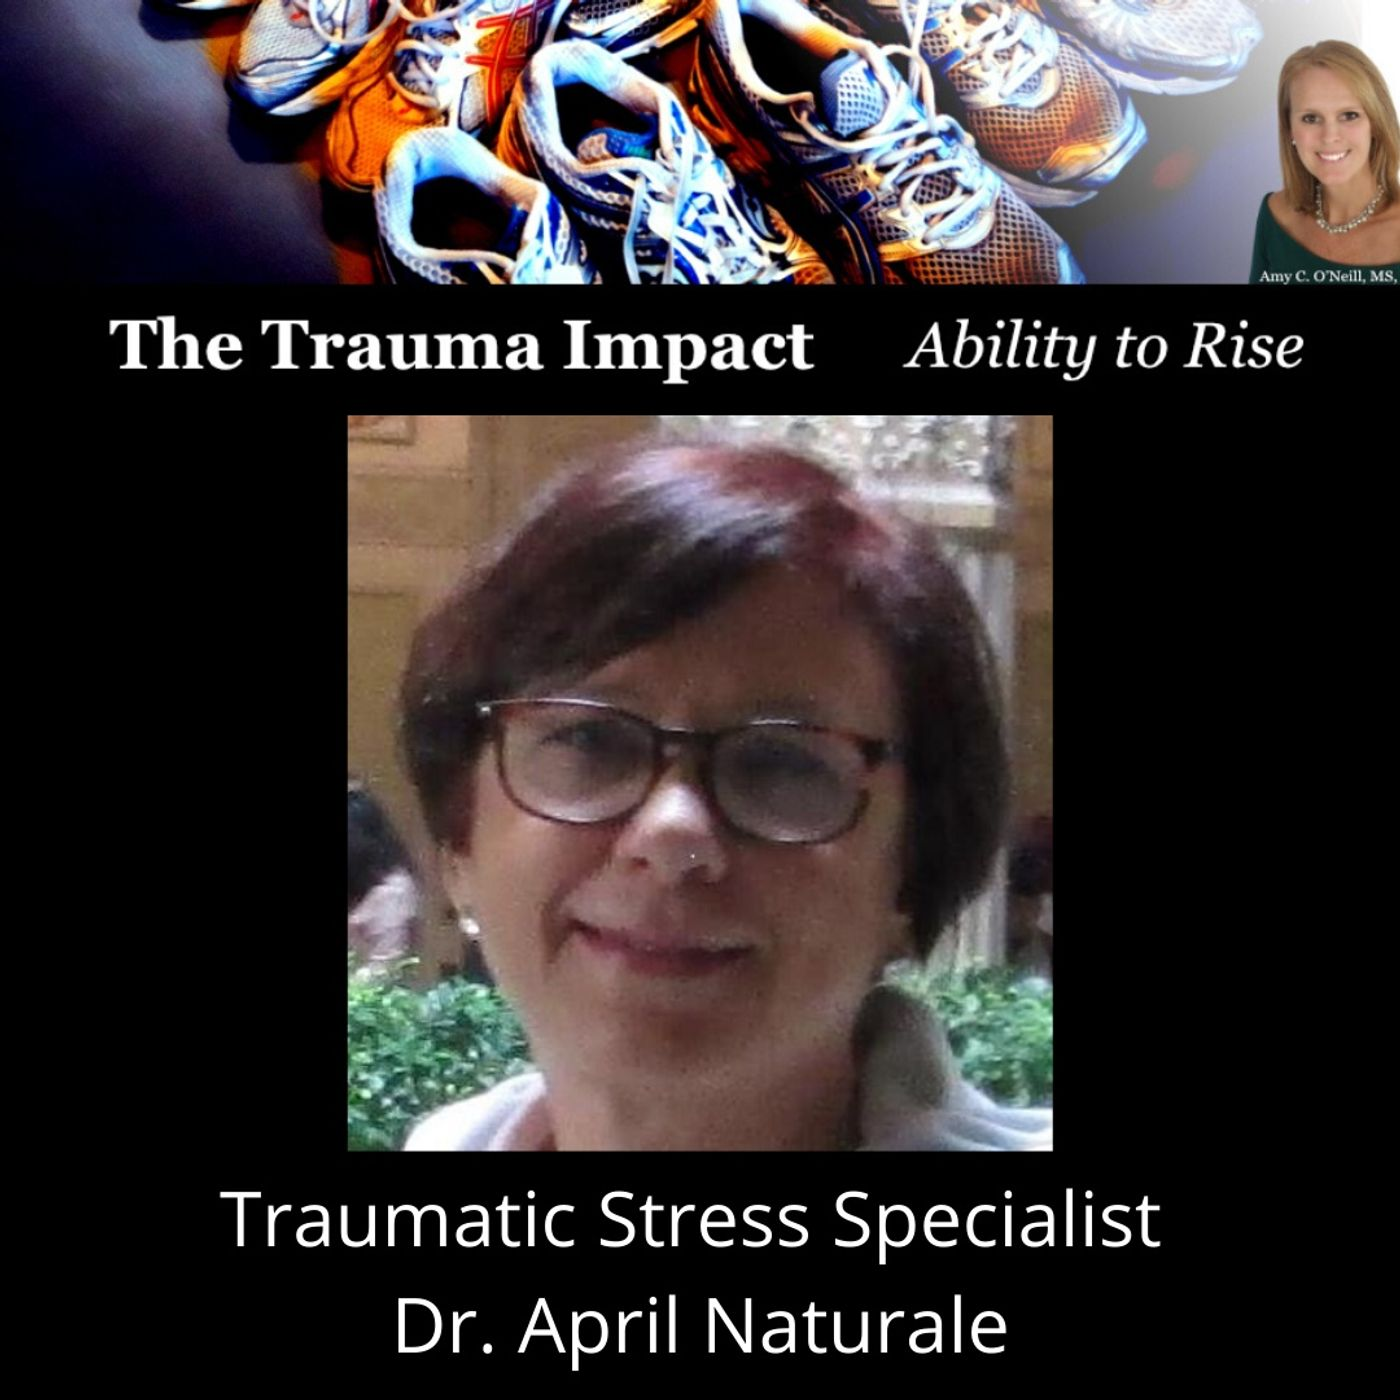 Traumatic Stress Specialist Dr. April Naturale